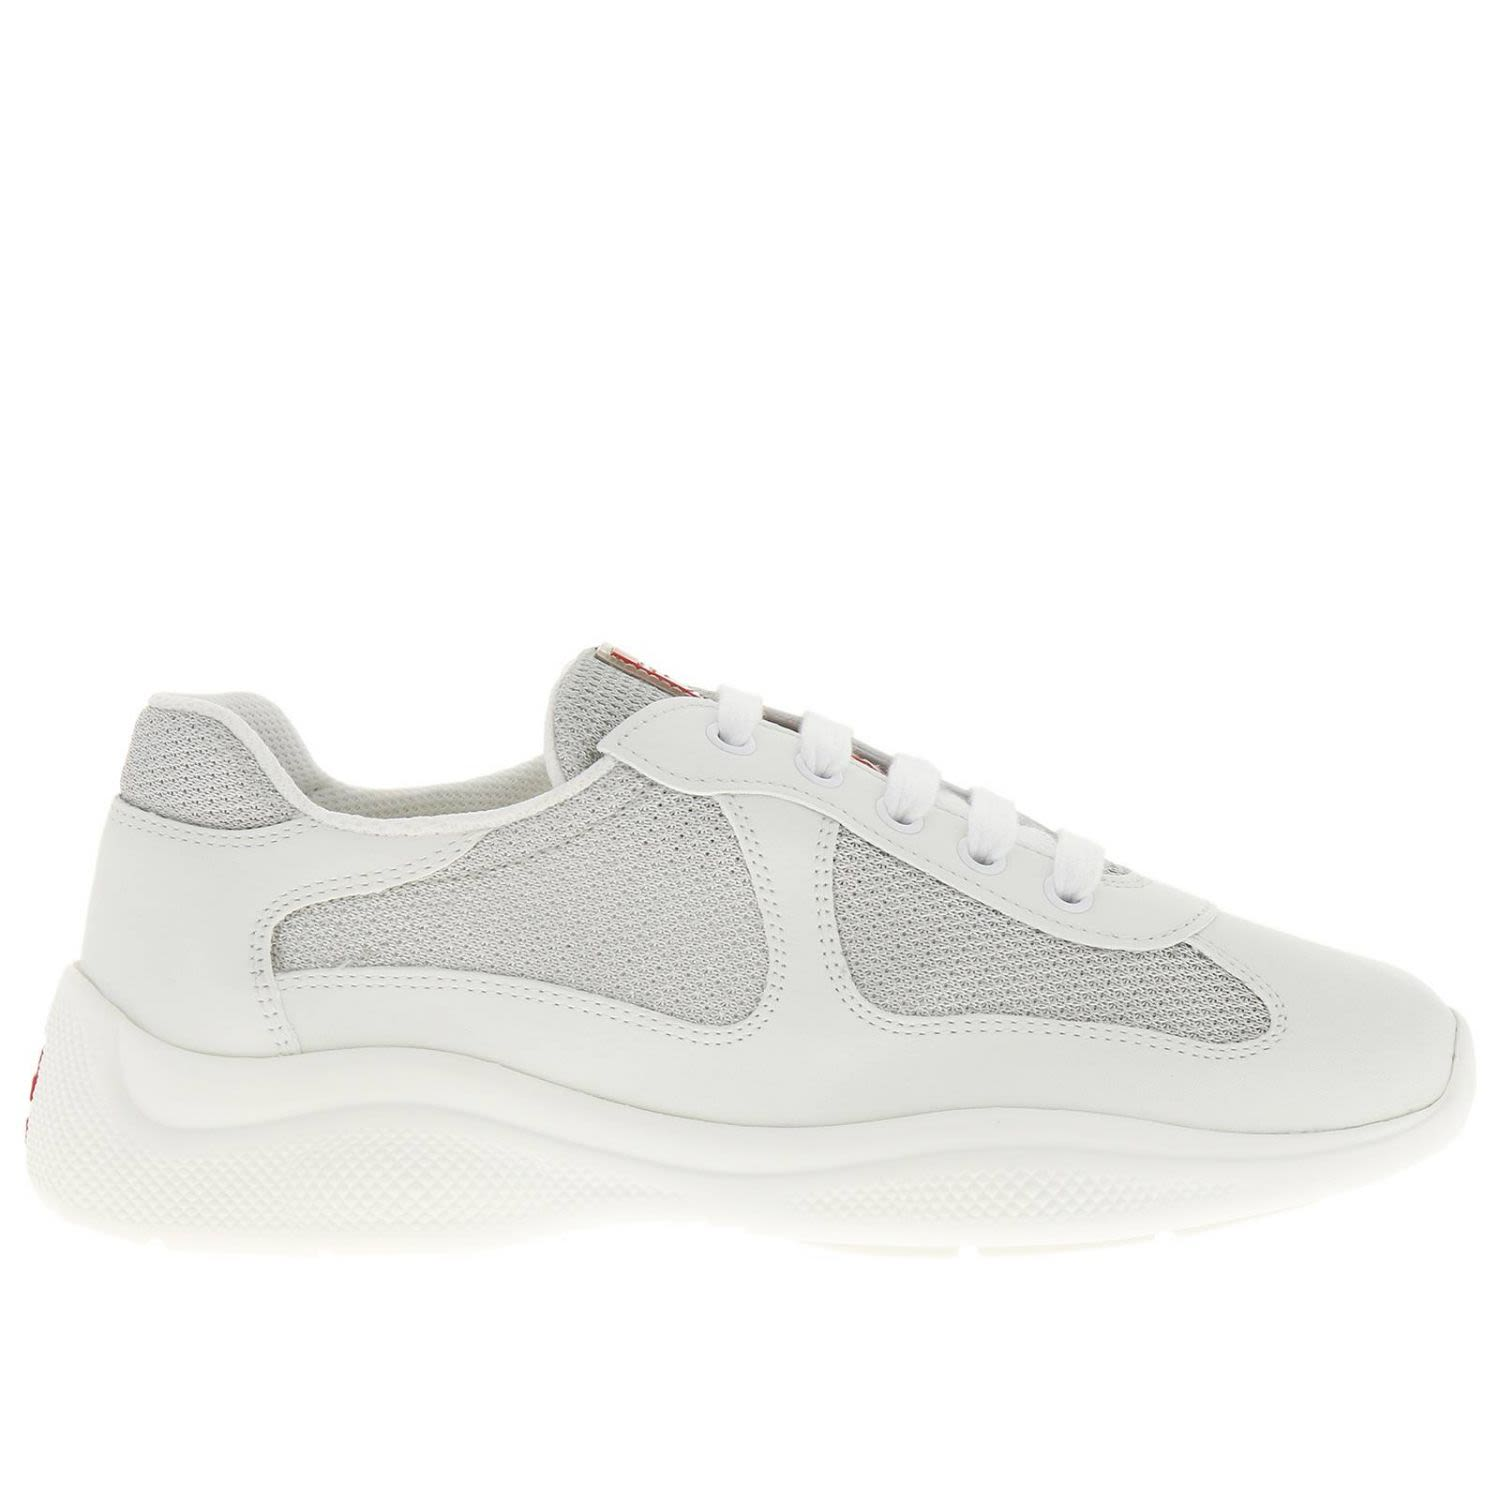 496984191498 Prada Sneakers Shoes Women In White